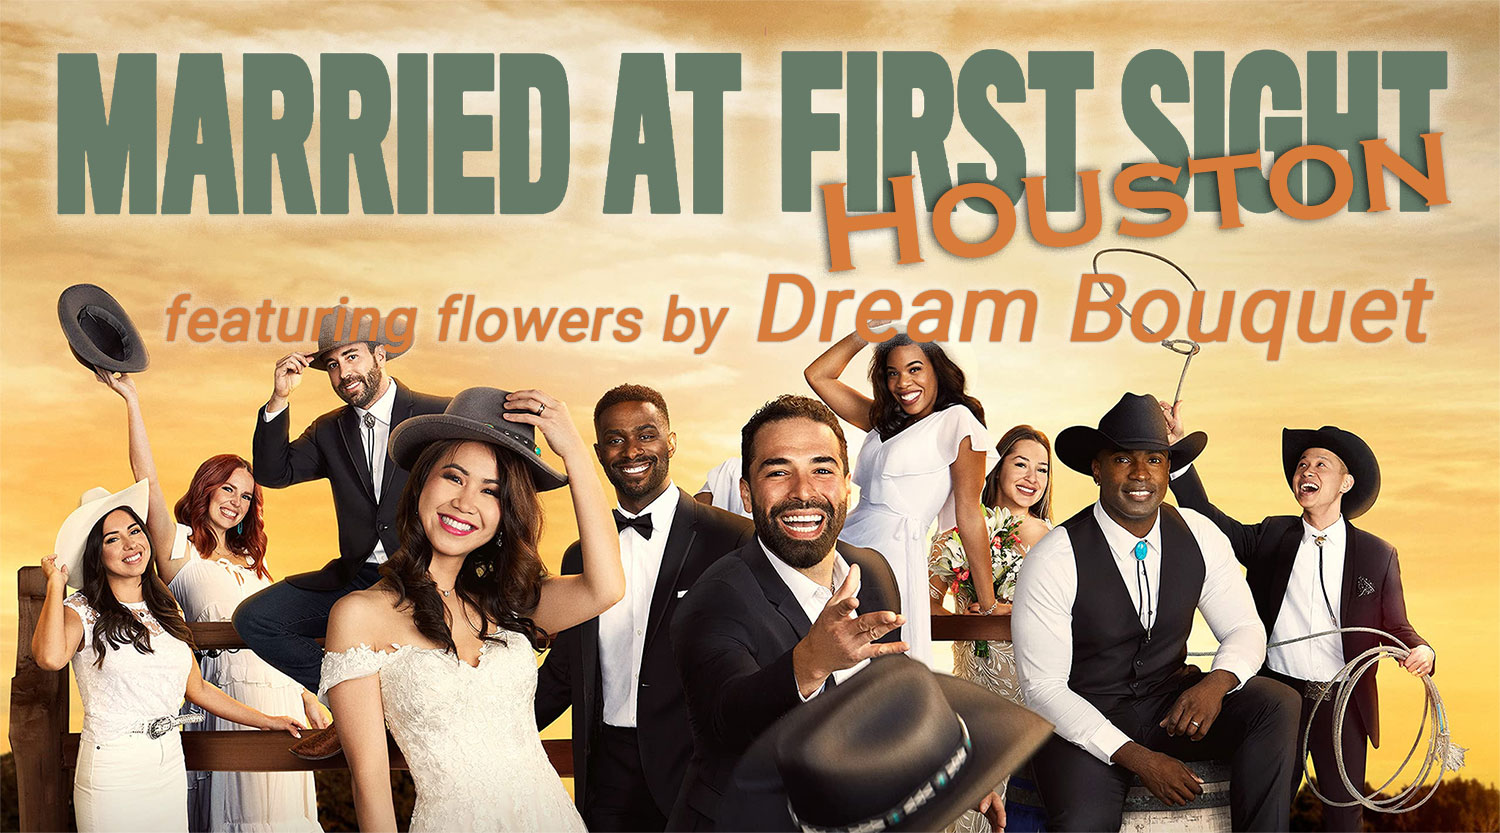 Married at First Sight Houston featuring Dream Bouquet